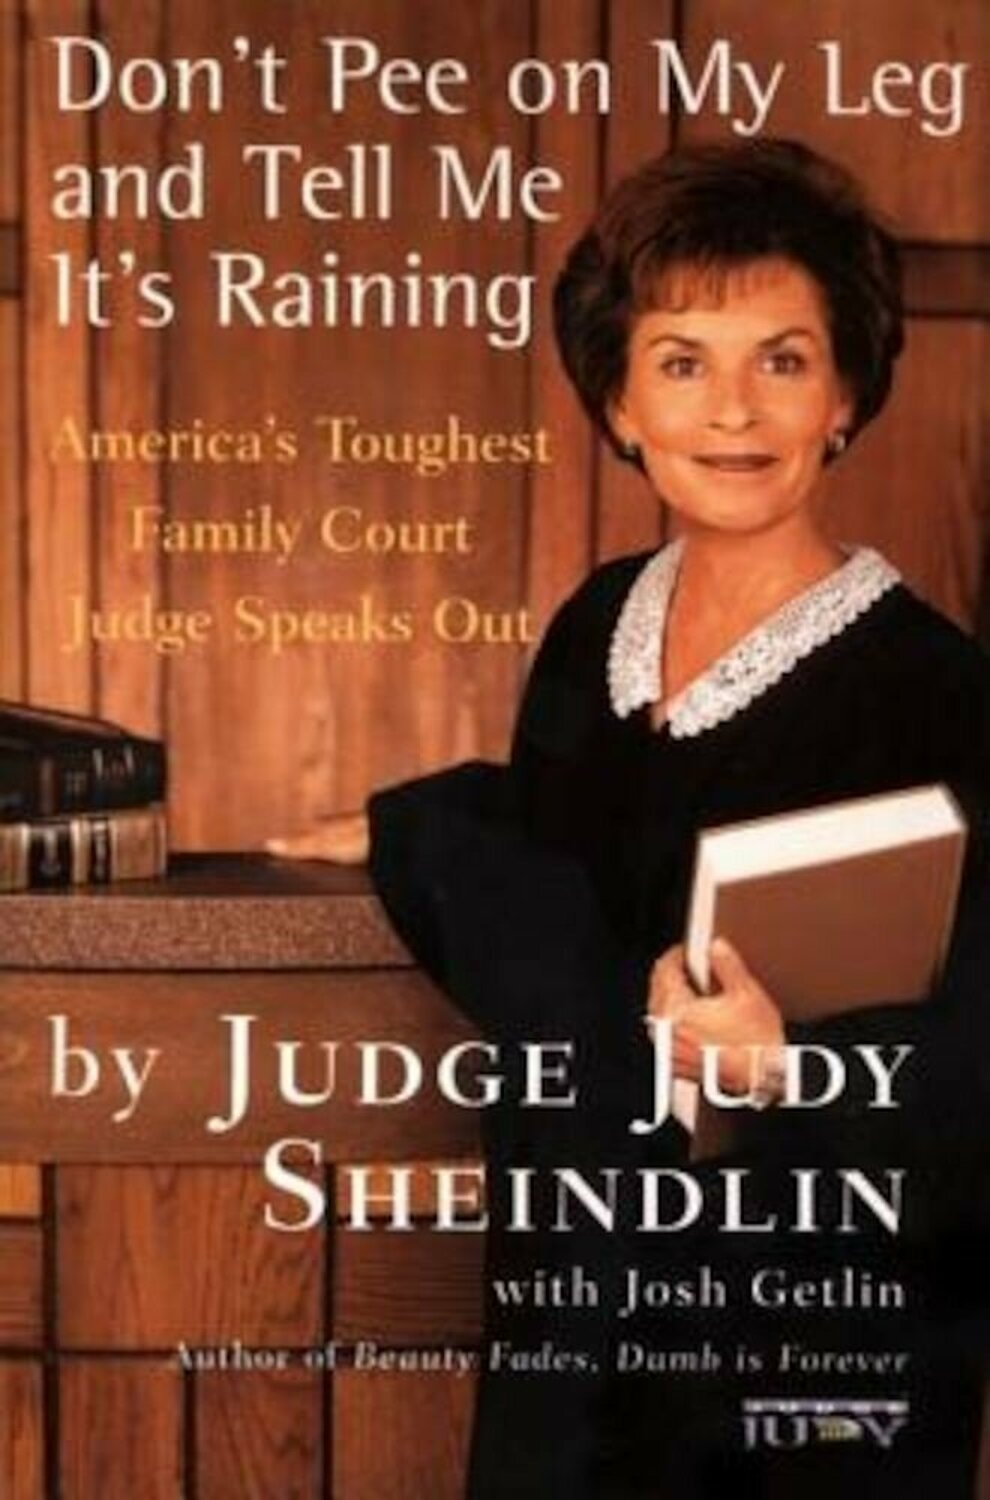 'Don't Pee on My Leg and Tell Me It's Raining' by Judy Sheindlin